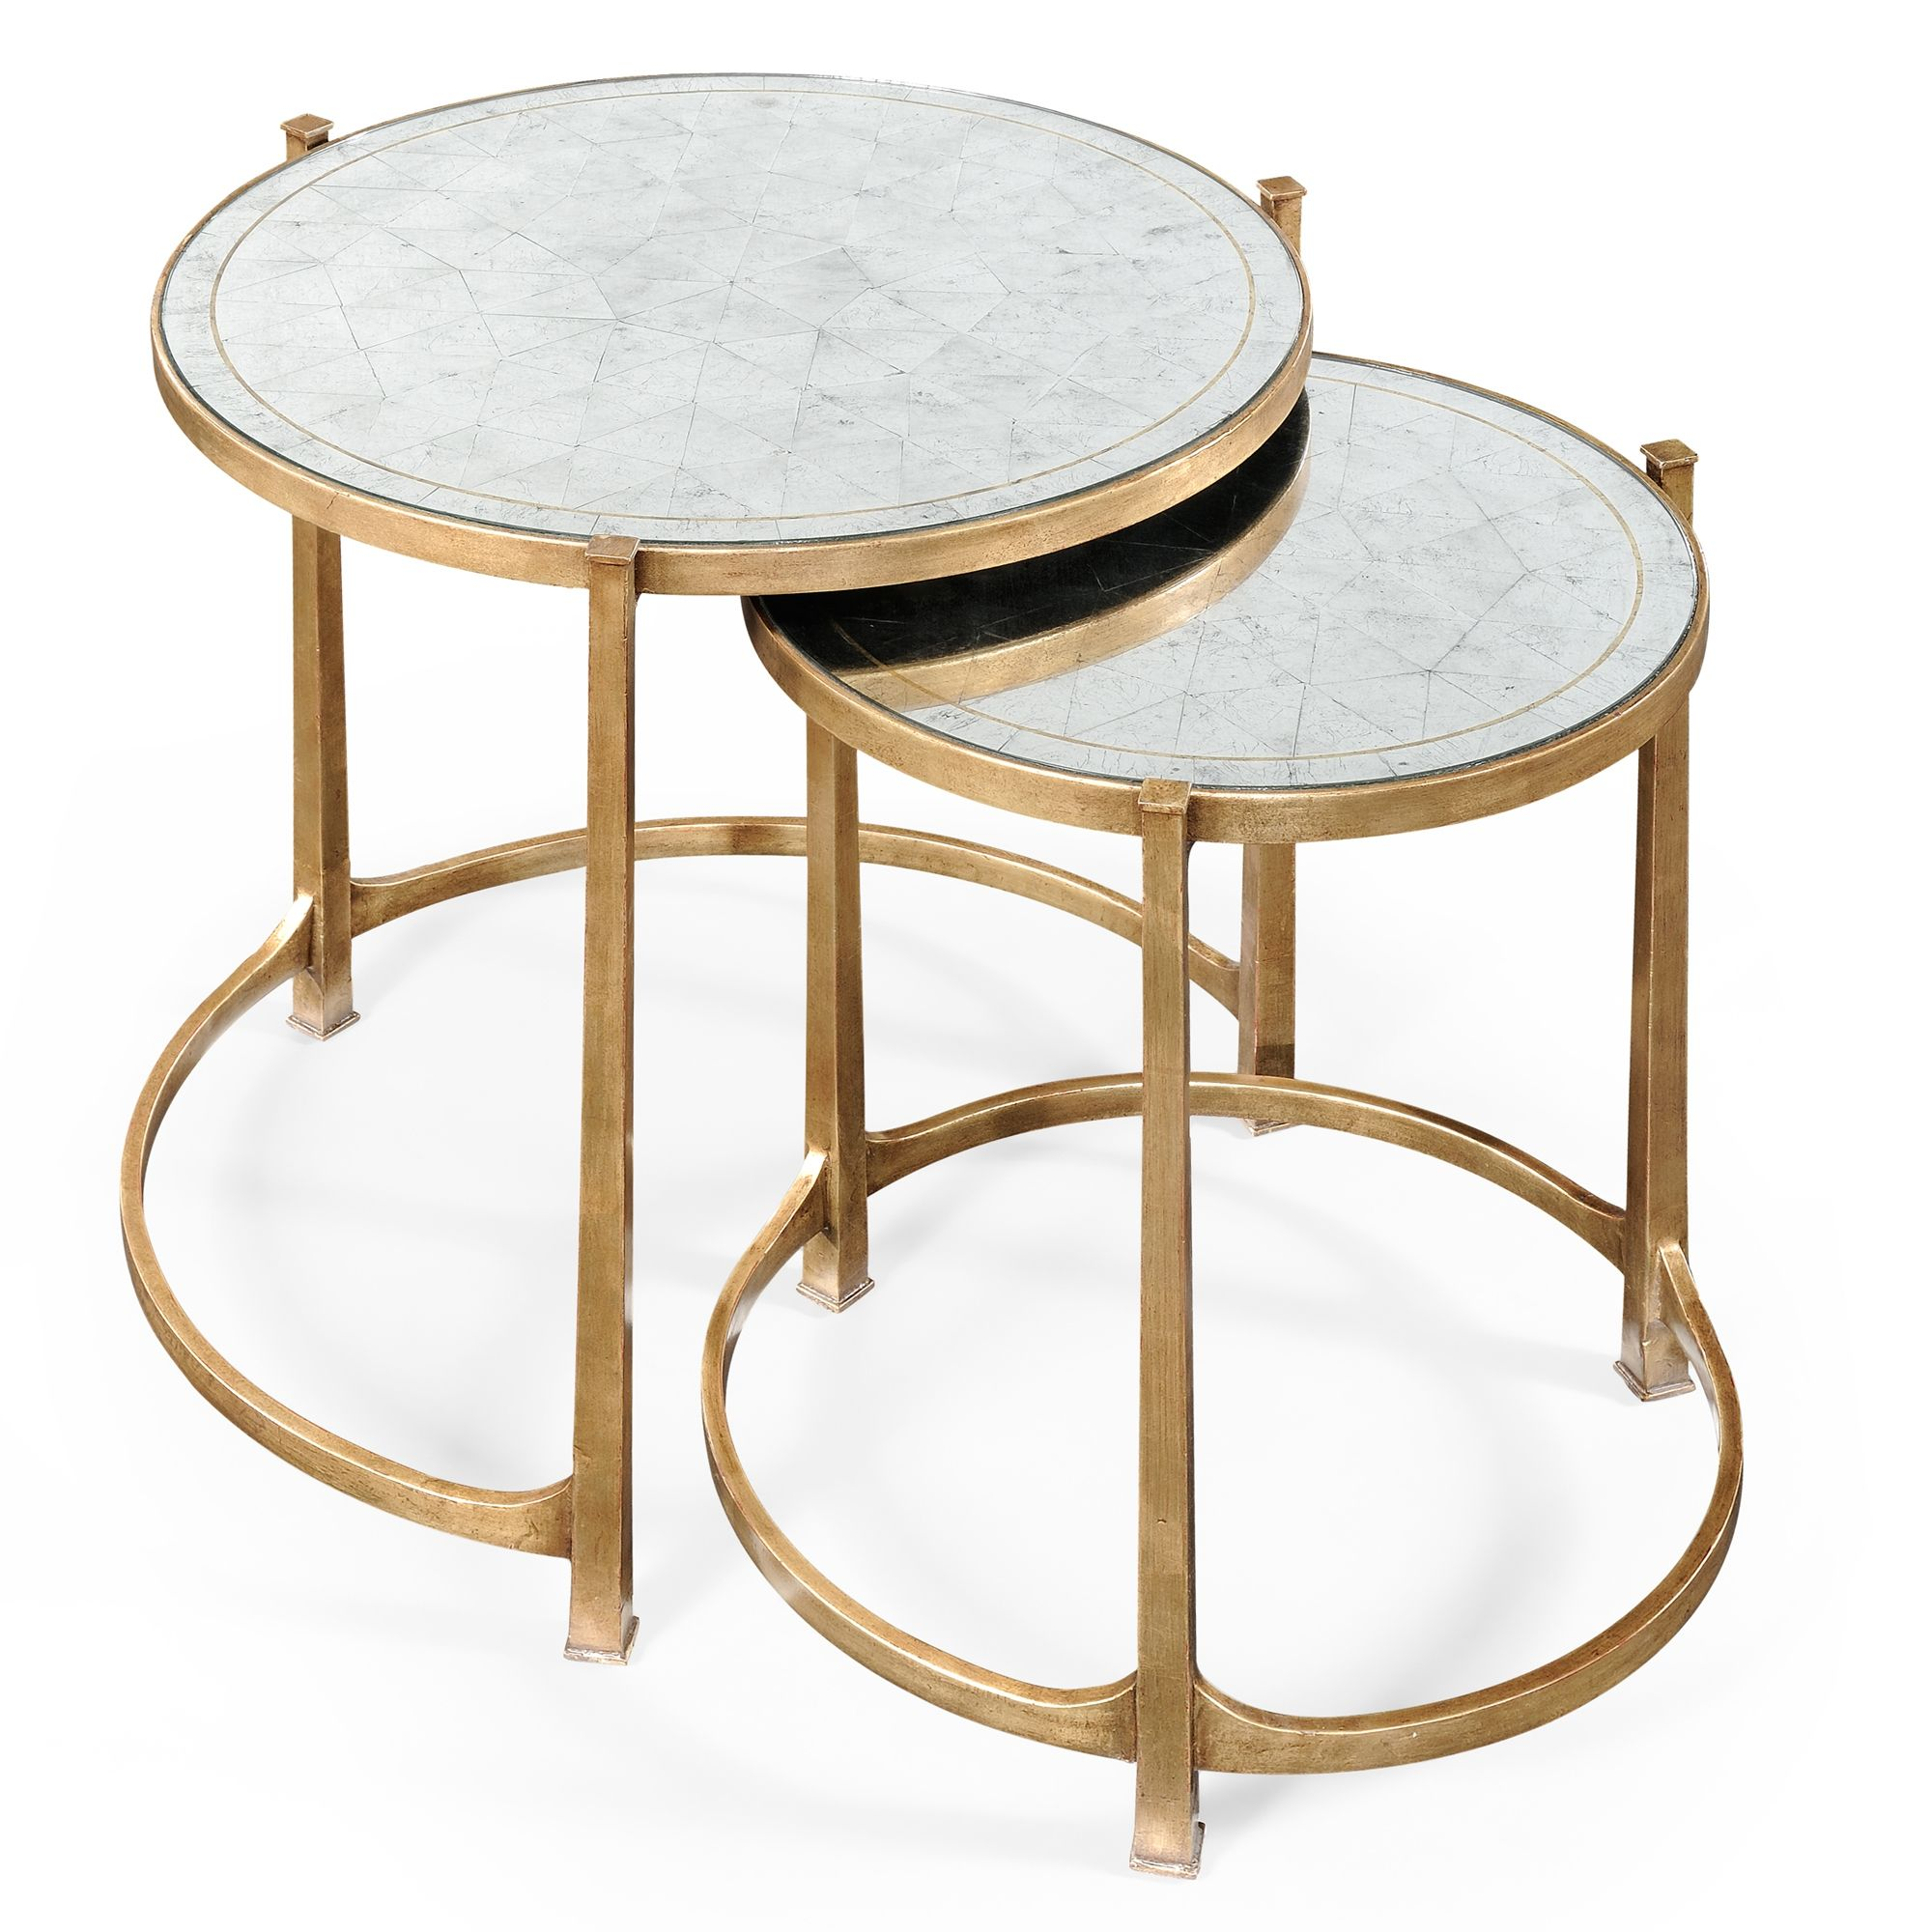 Iron Side Tables For Living Room Jonathan Charles Artanis Nesting Tables Stunning Set Of